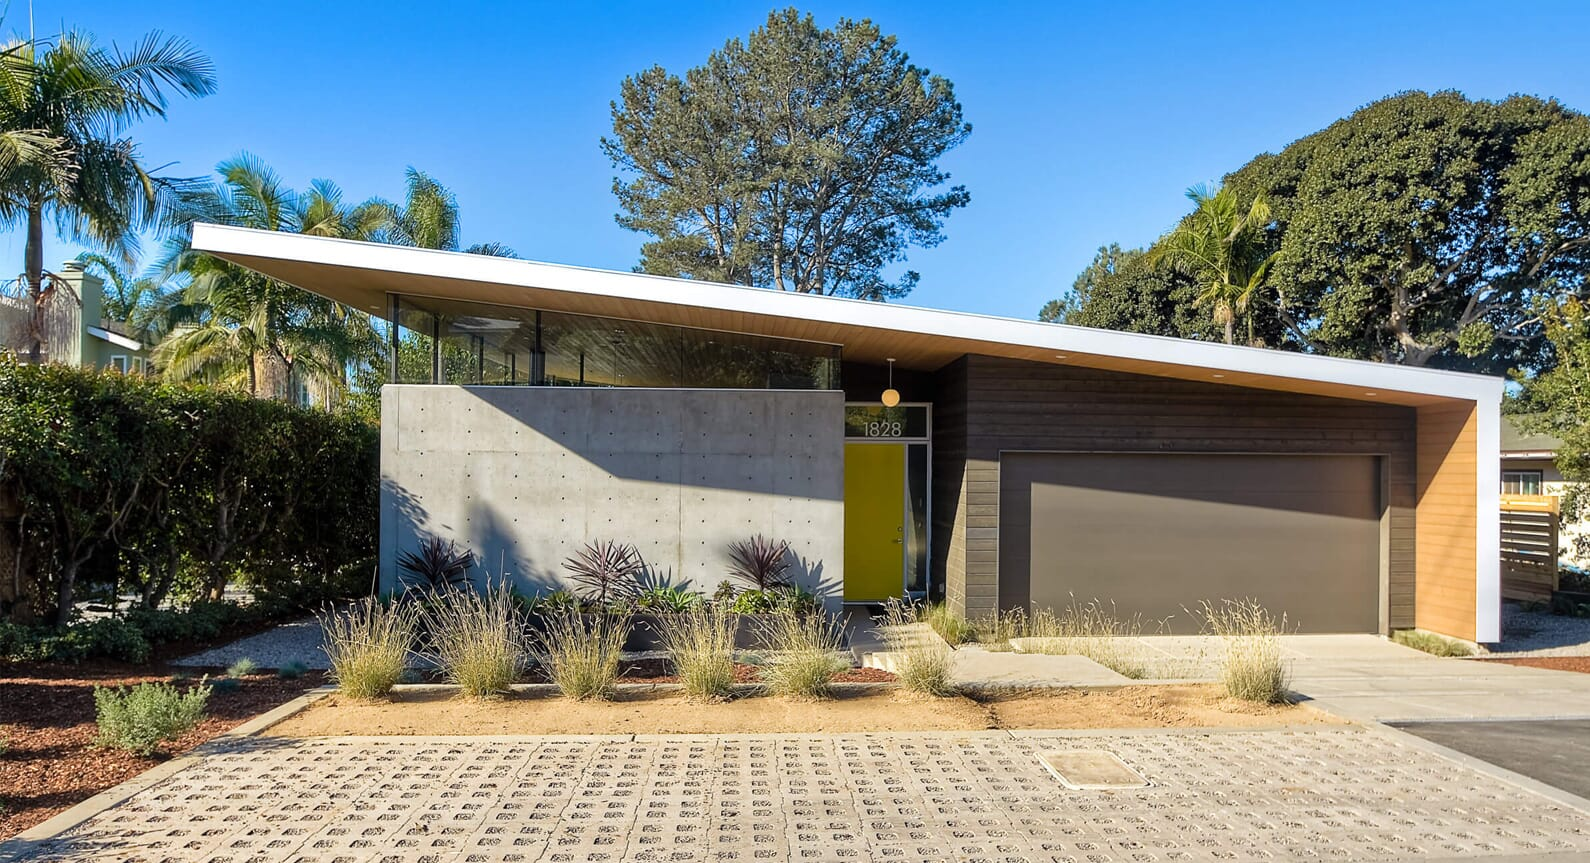 Surfside Projects' Avocado Acres House Takes Cues From Modernist Architecture